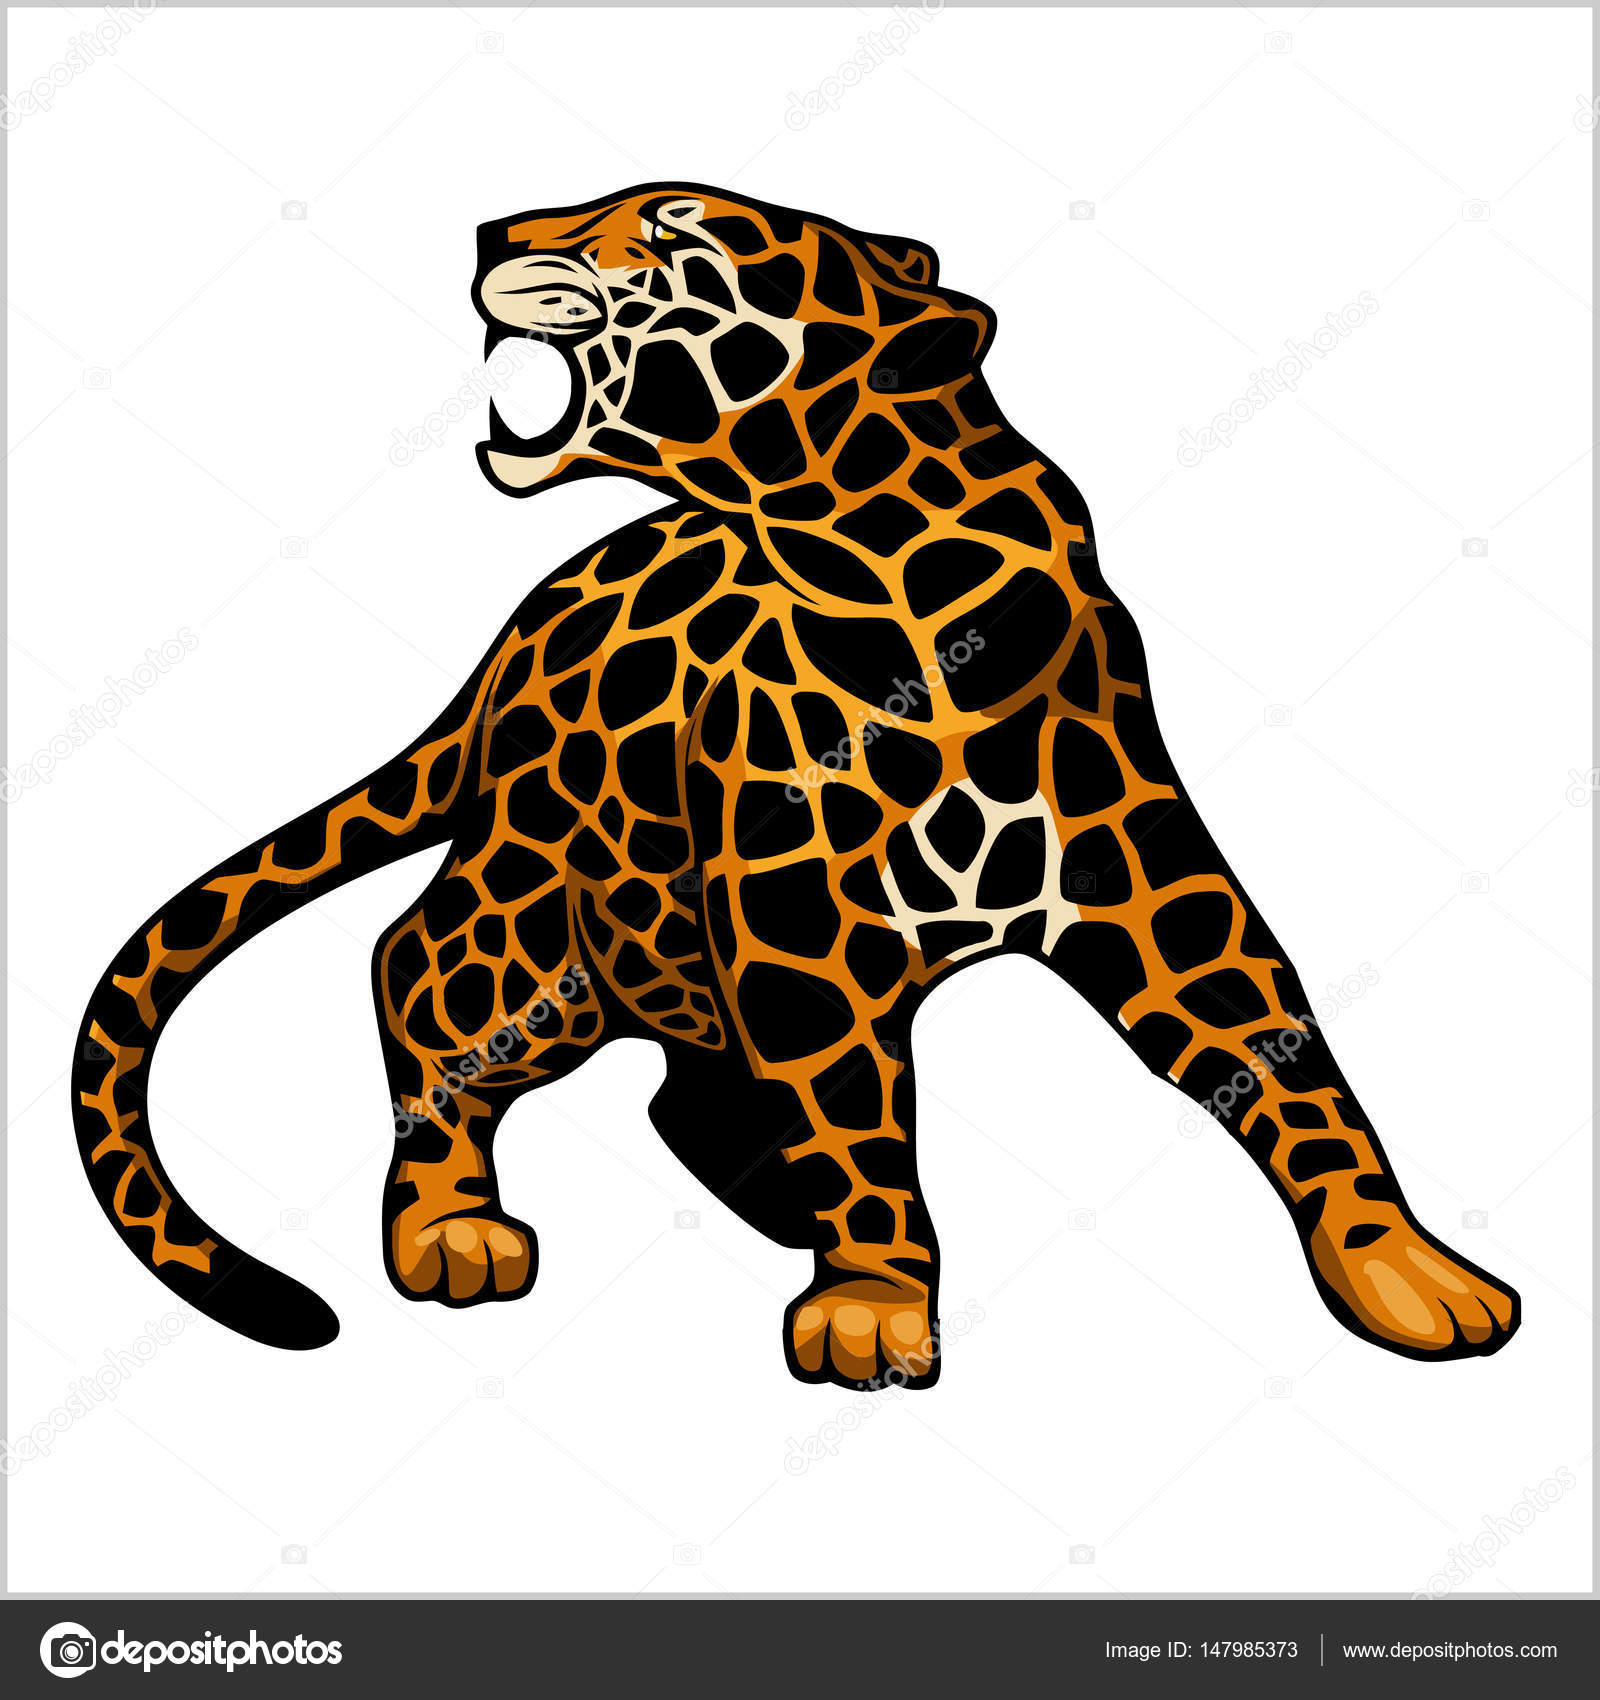 Jaguar logo icon vector character illustration stock vector jaguar logo icon vector character illustration stock vector biocorpaavc Gallery